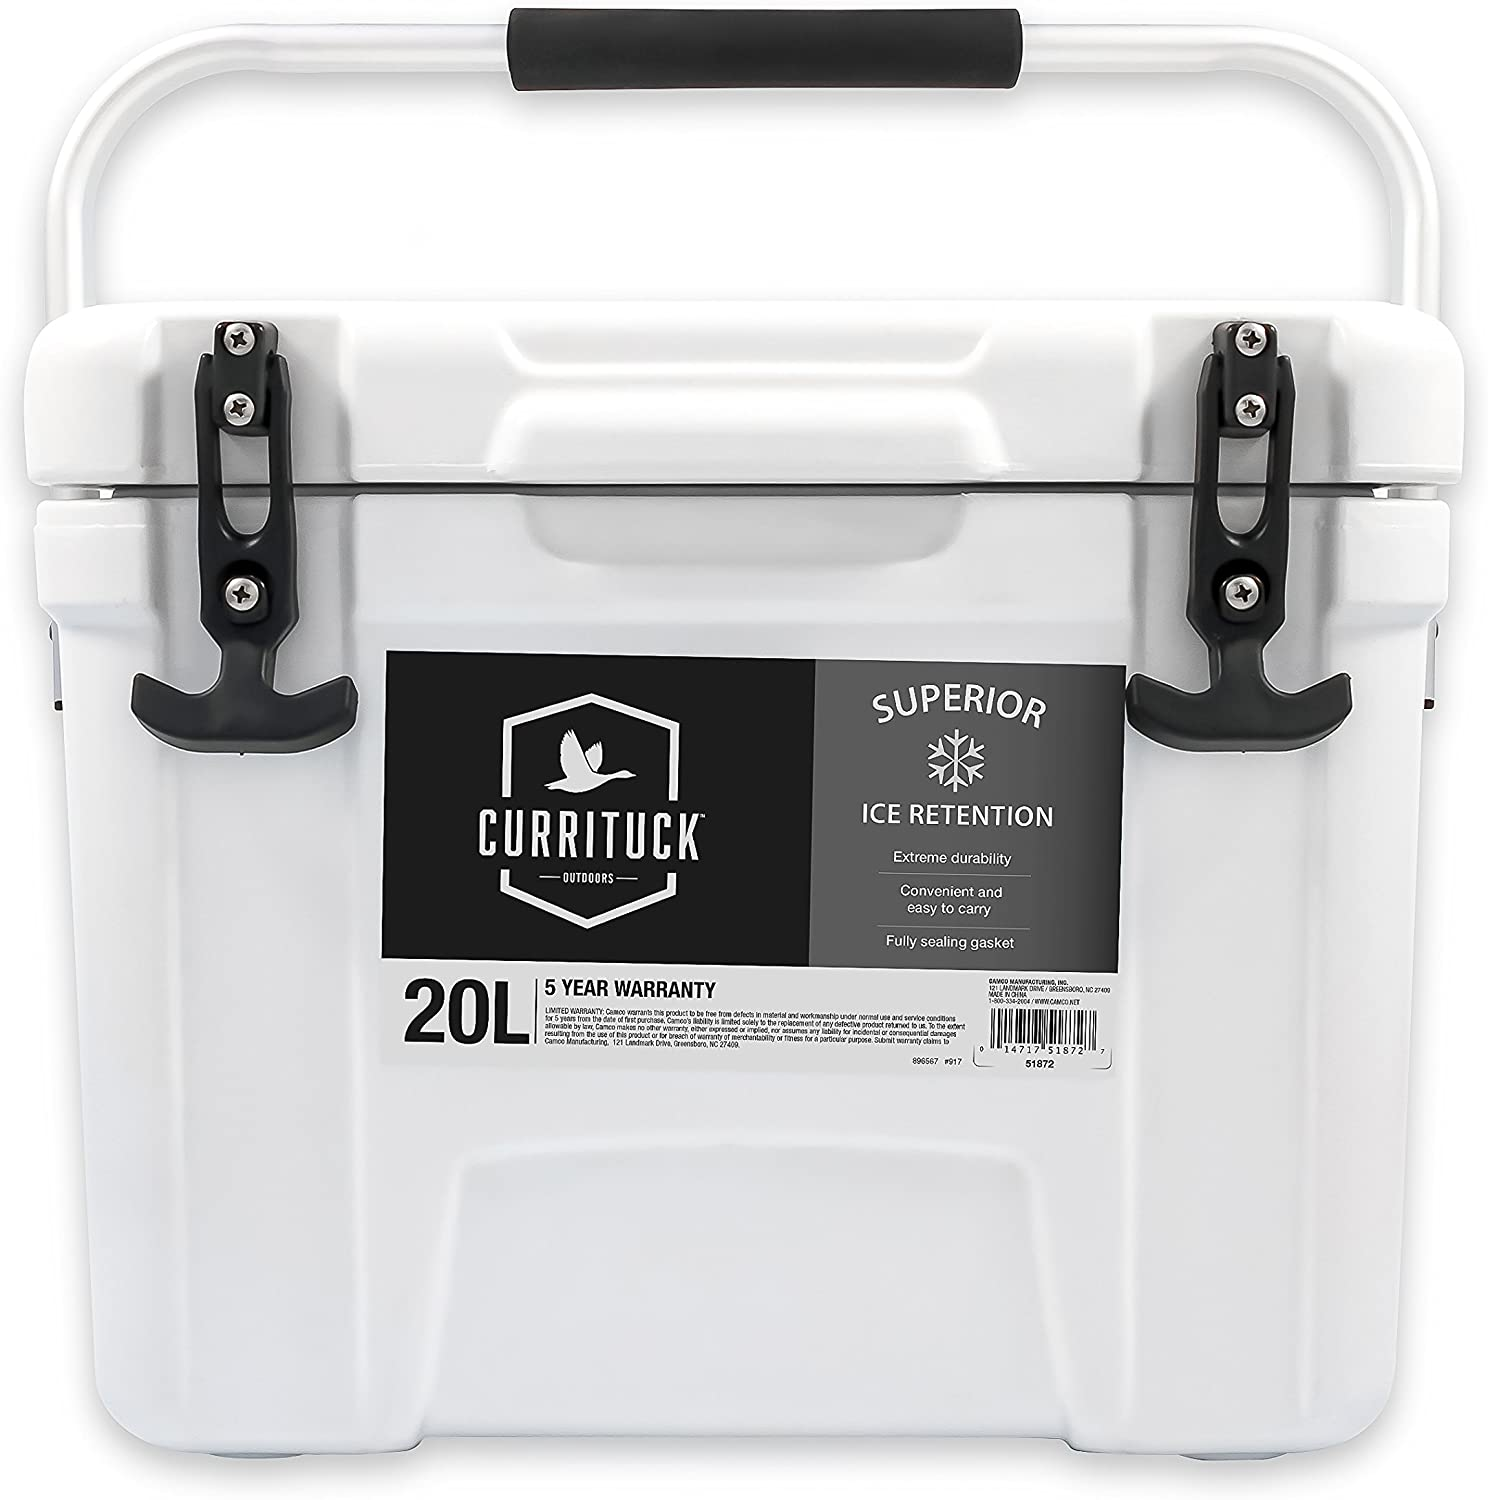 Currituck Heavy Duty Cooler by Camco- Perfect as a Boat Cooler and For Hunting, Hiking, Camping, Fishing, The Beach and More- 21 Quarts (White) (51872)